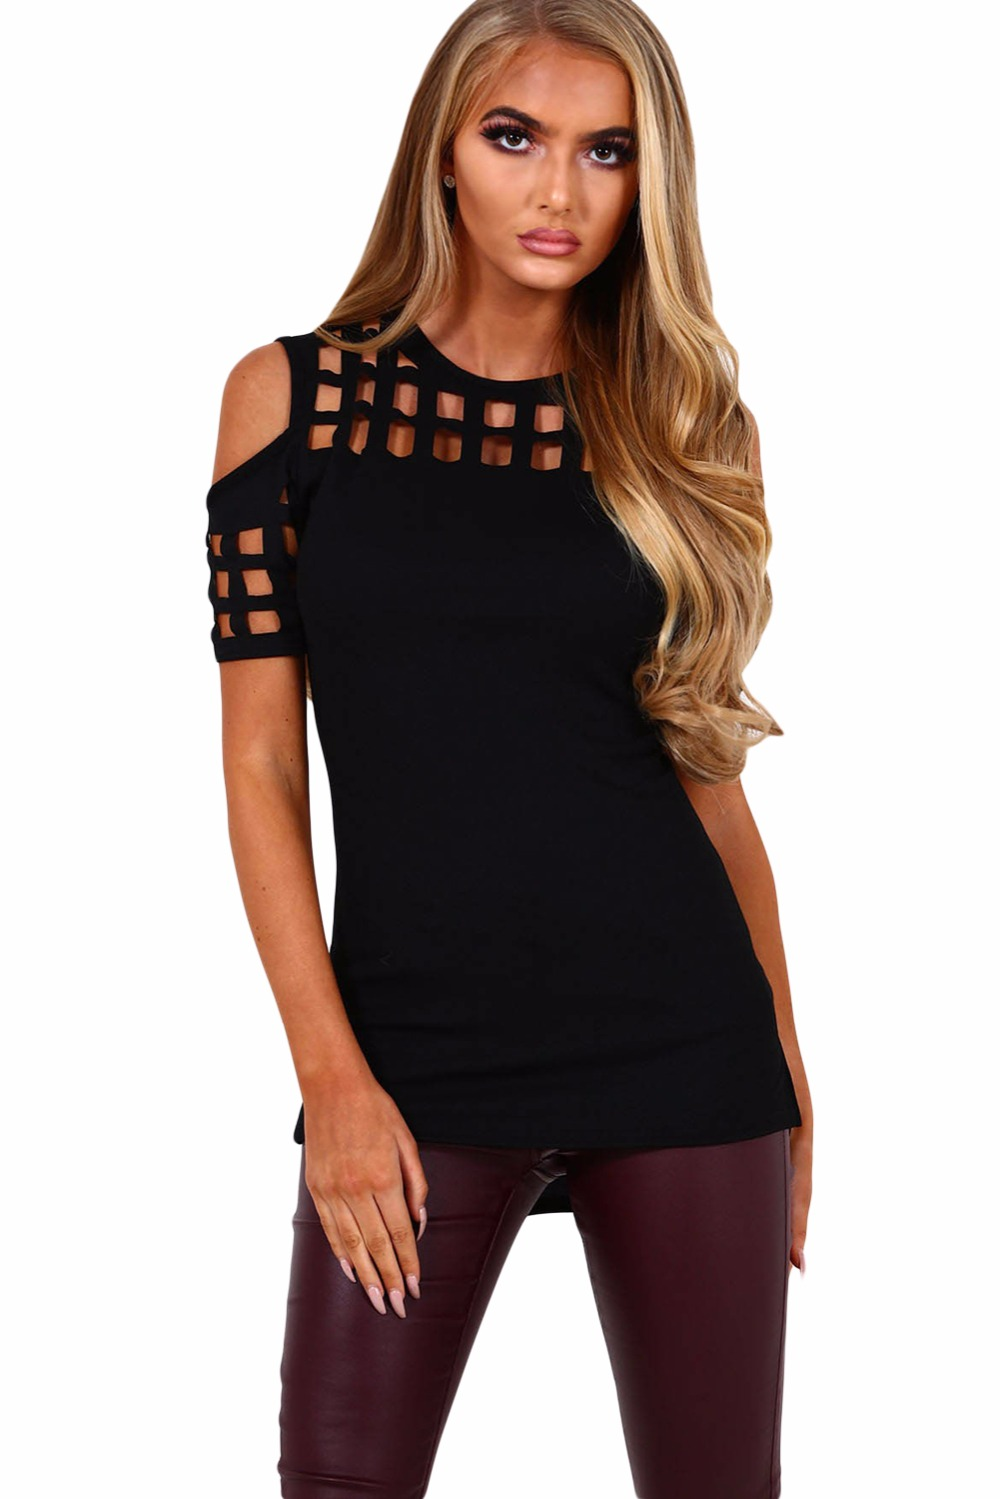 Fashion New Women Tops 2017 Pink Cage Cutout Cold Shoulder Top Blouse Casual Shirts Blusas Femininas Hot Sale LC250008